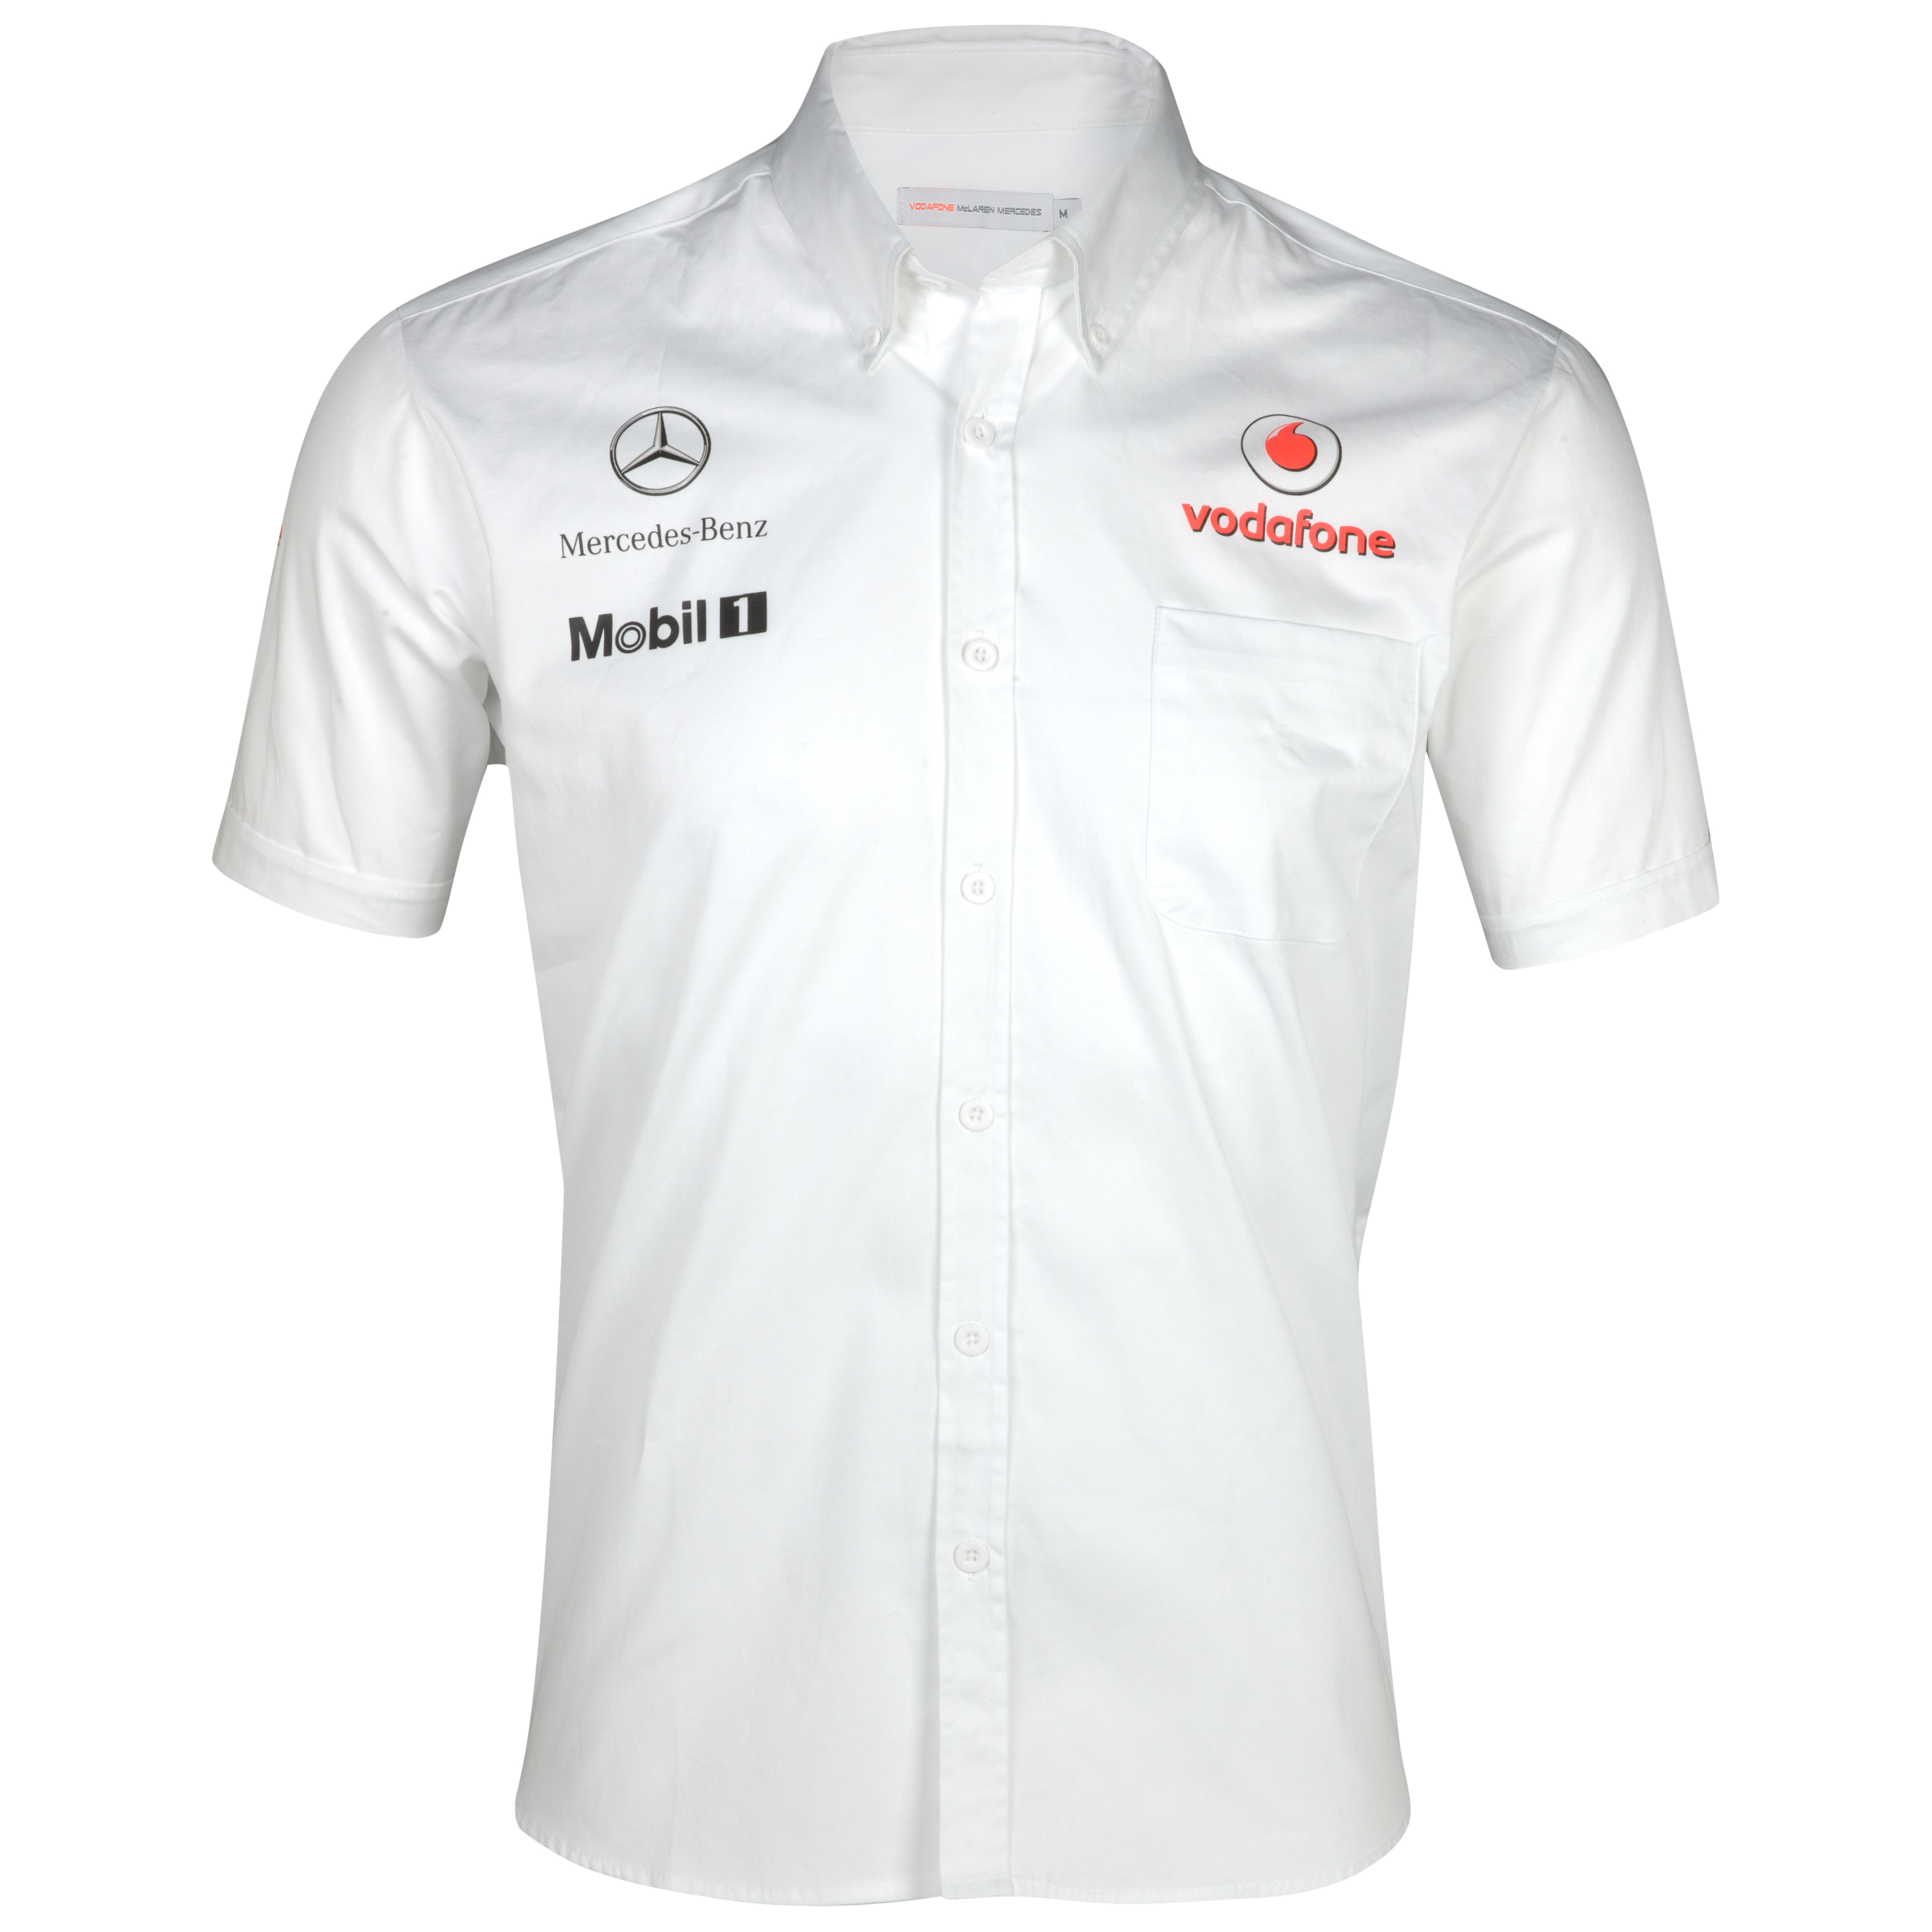 Vodafone McLaren Mercedes 2012 Team Shirt